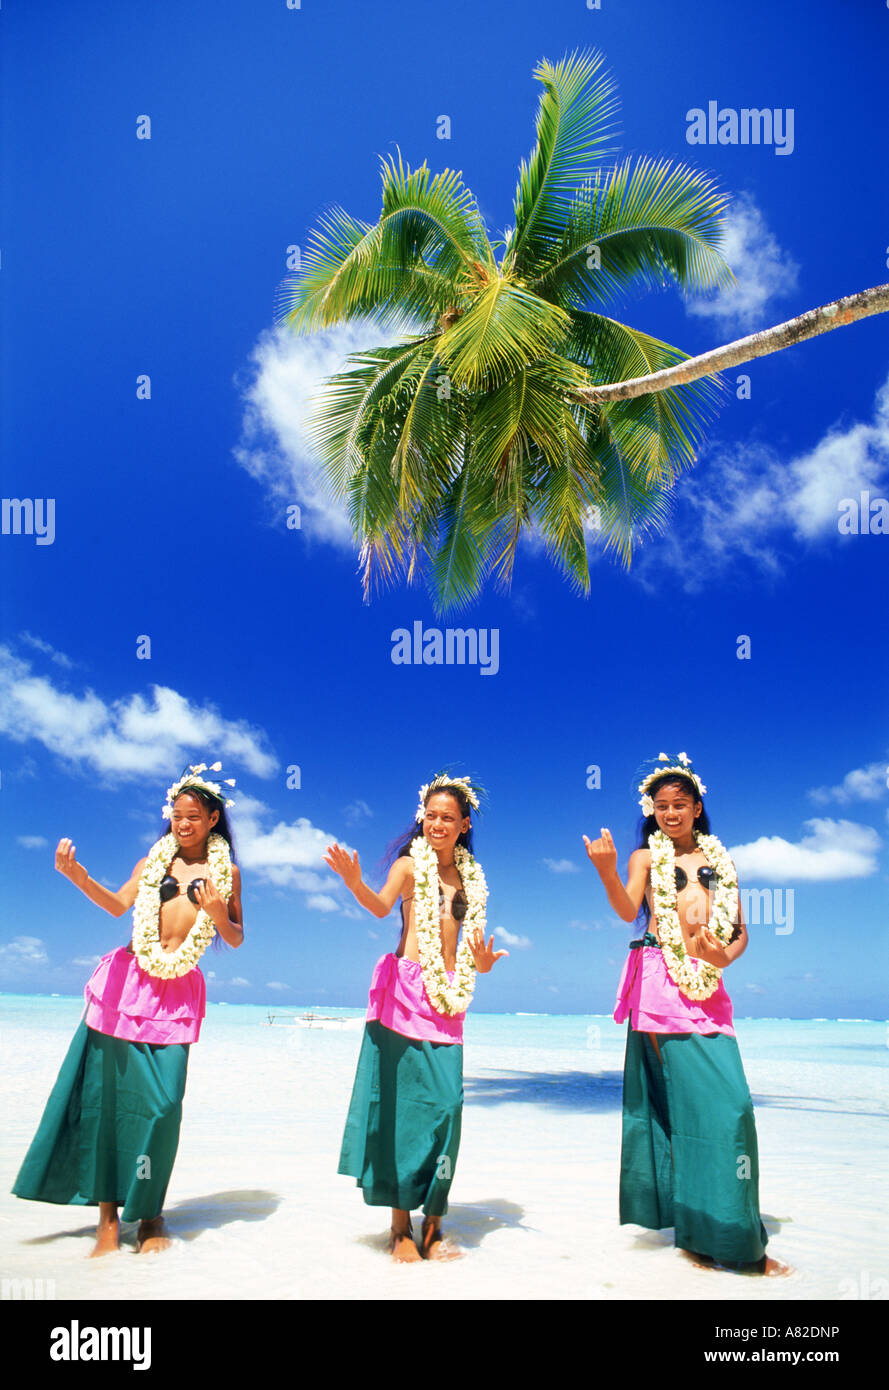 Three Polynesian girls with grass skirts and flower leis on Aitutaki Island in South Pacific - Stock Image